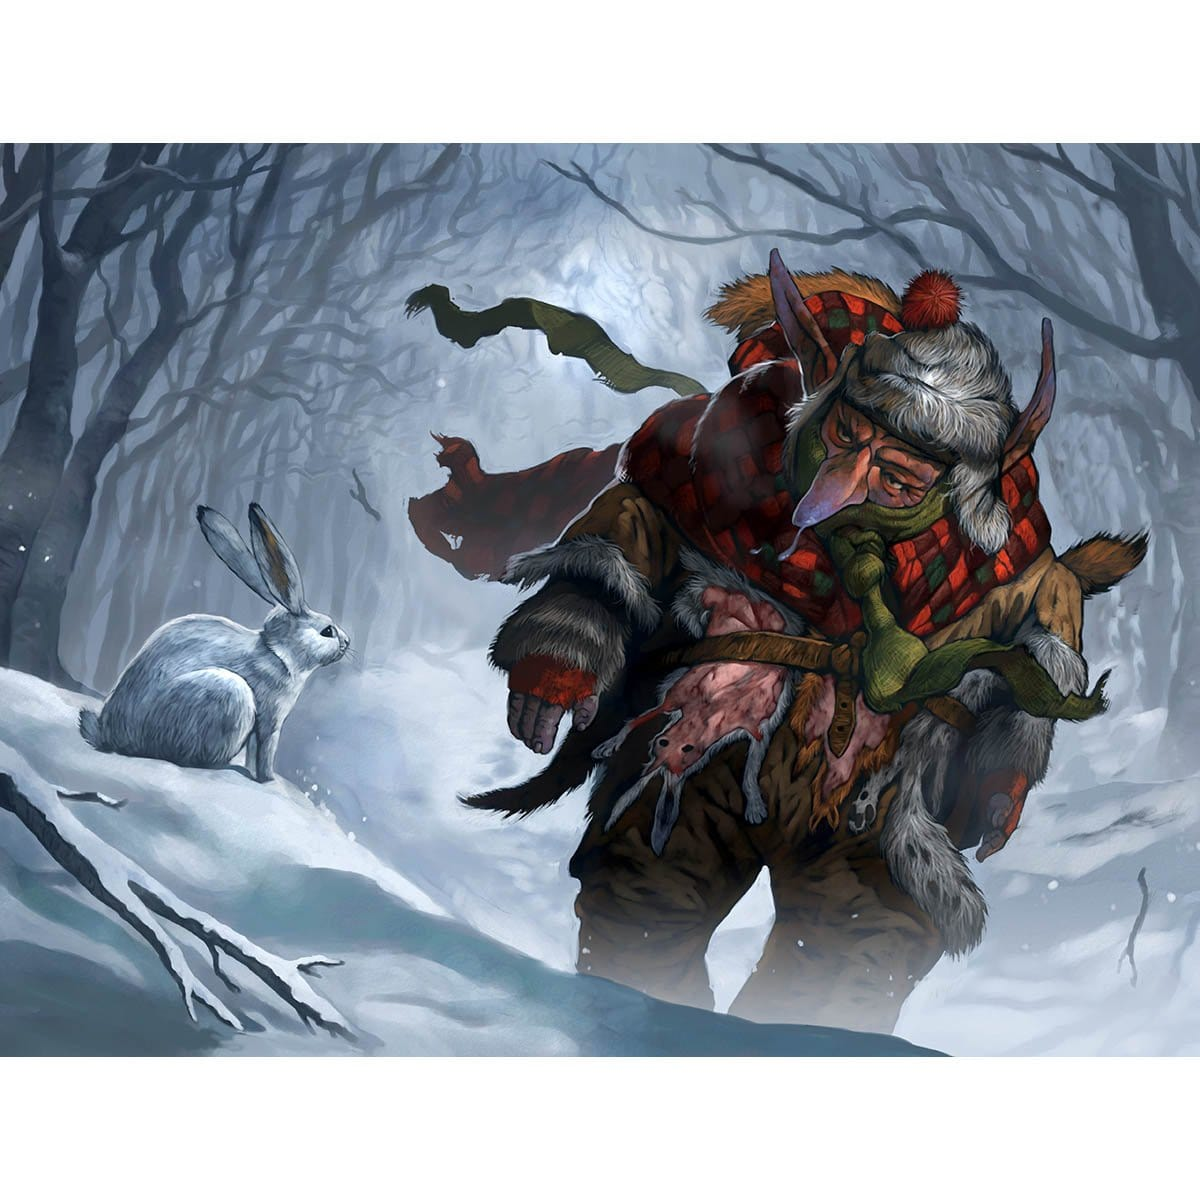 Goblin Furrier Print - Print - Original Magic Art - Accessories for Magic the Gathering and other card games